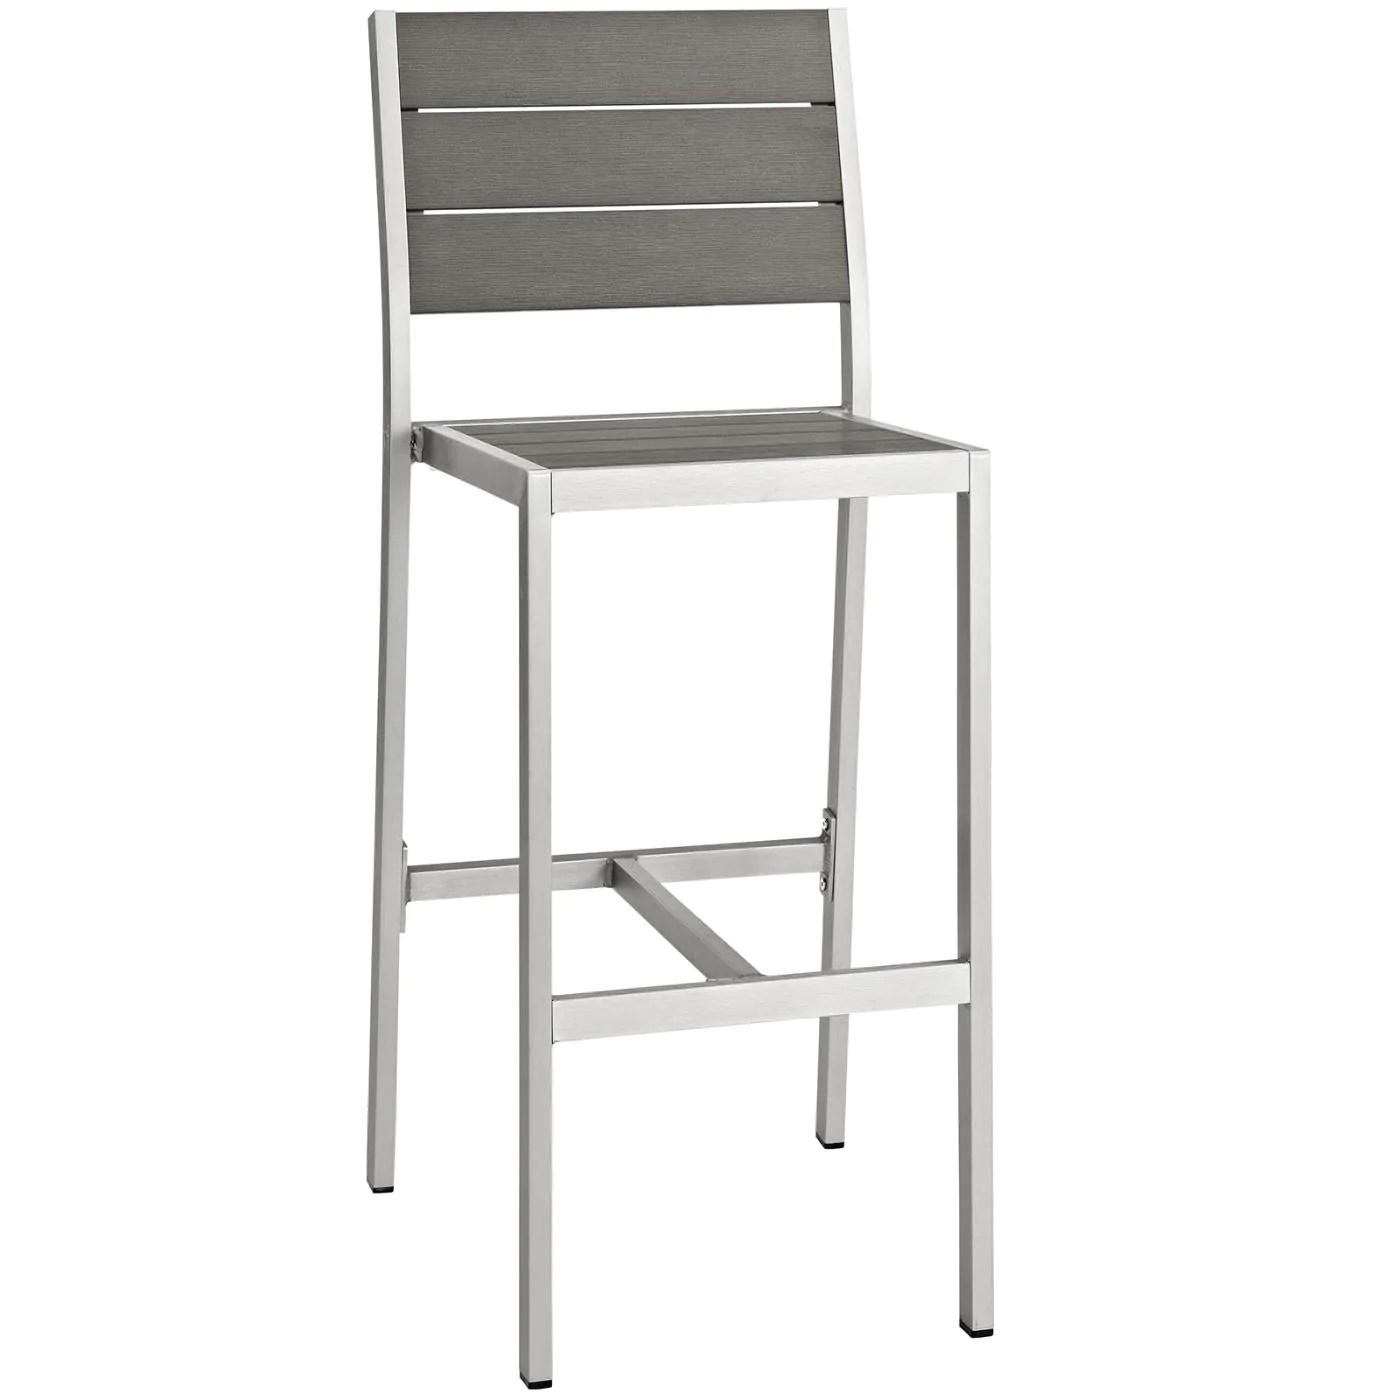 Bar Stools For Sale Modway Outdoor Bar Chairs On Sale Eei 2255 Slv Gry Shore Outdoor Patio Aluminum Armless Bar Stool Only Only 224 00 At Contemporary Furniture